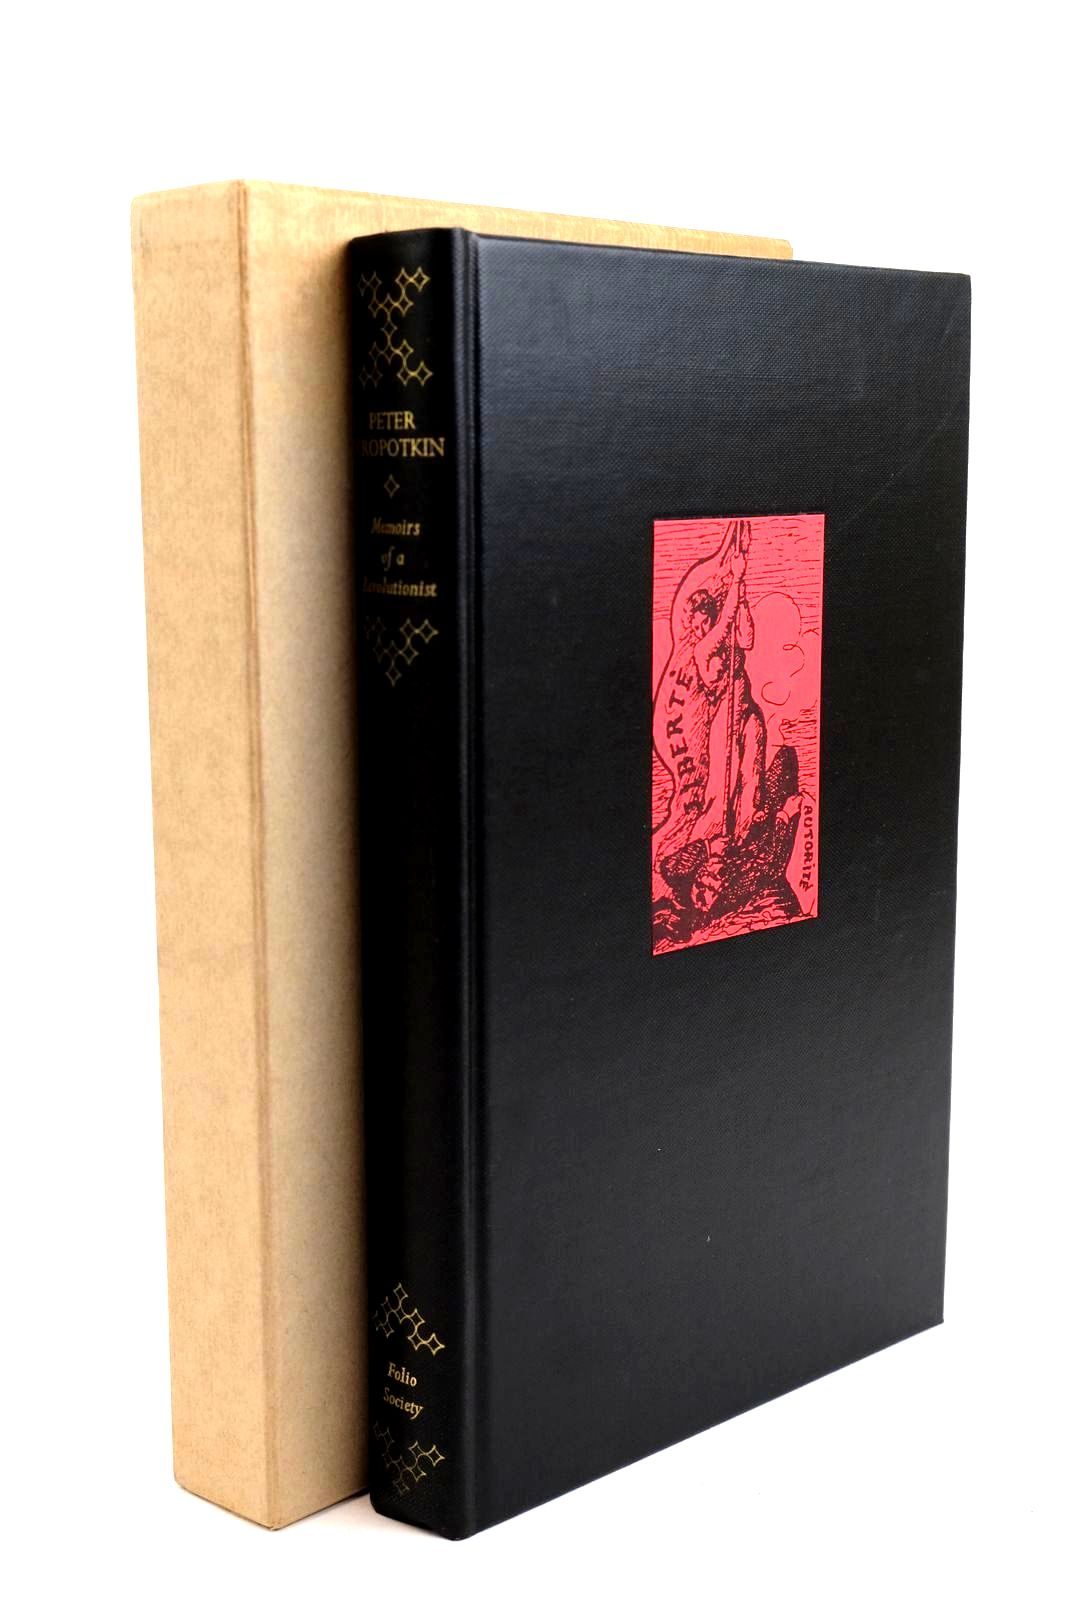 Photo of MEMOIRS OF A REVOLUTIONIST written by Kropotkin, Peter Ward, Colin published by Folio Society (STOCK CODE: 1320321)  for sale by Stella & Rose's Books